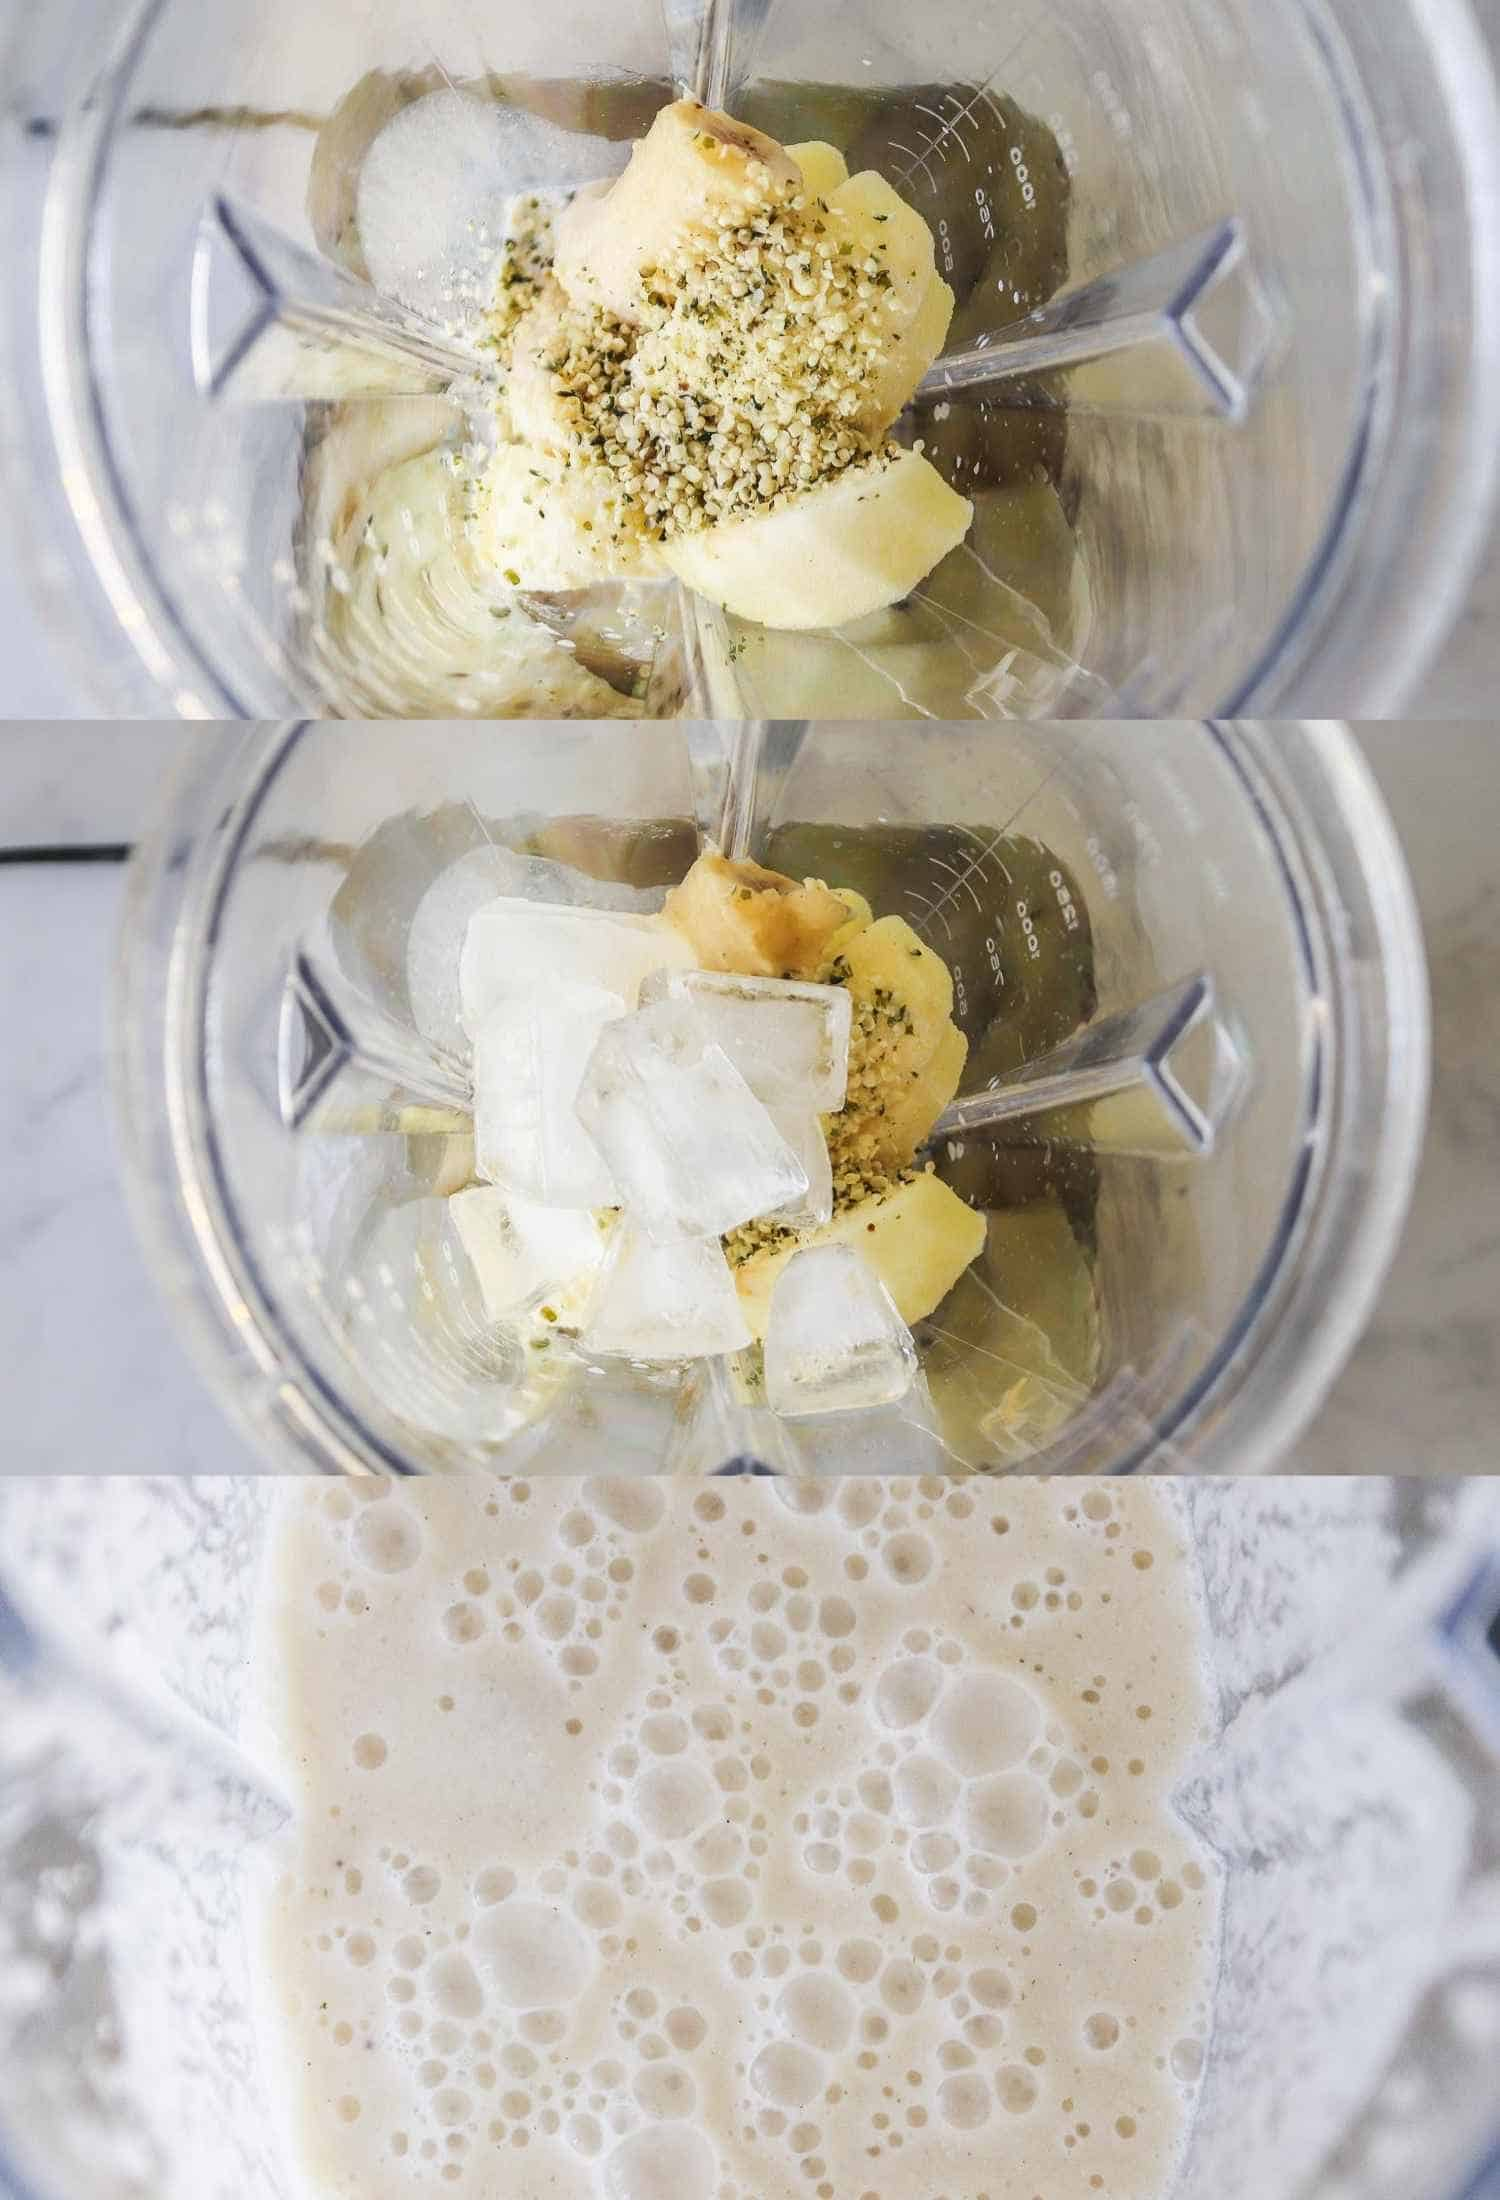 Three photos showing the steps for making this smoothie recipe in a blender jug